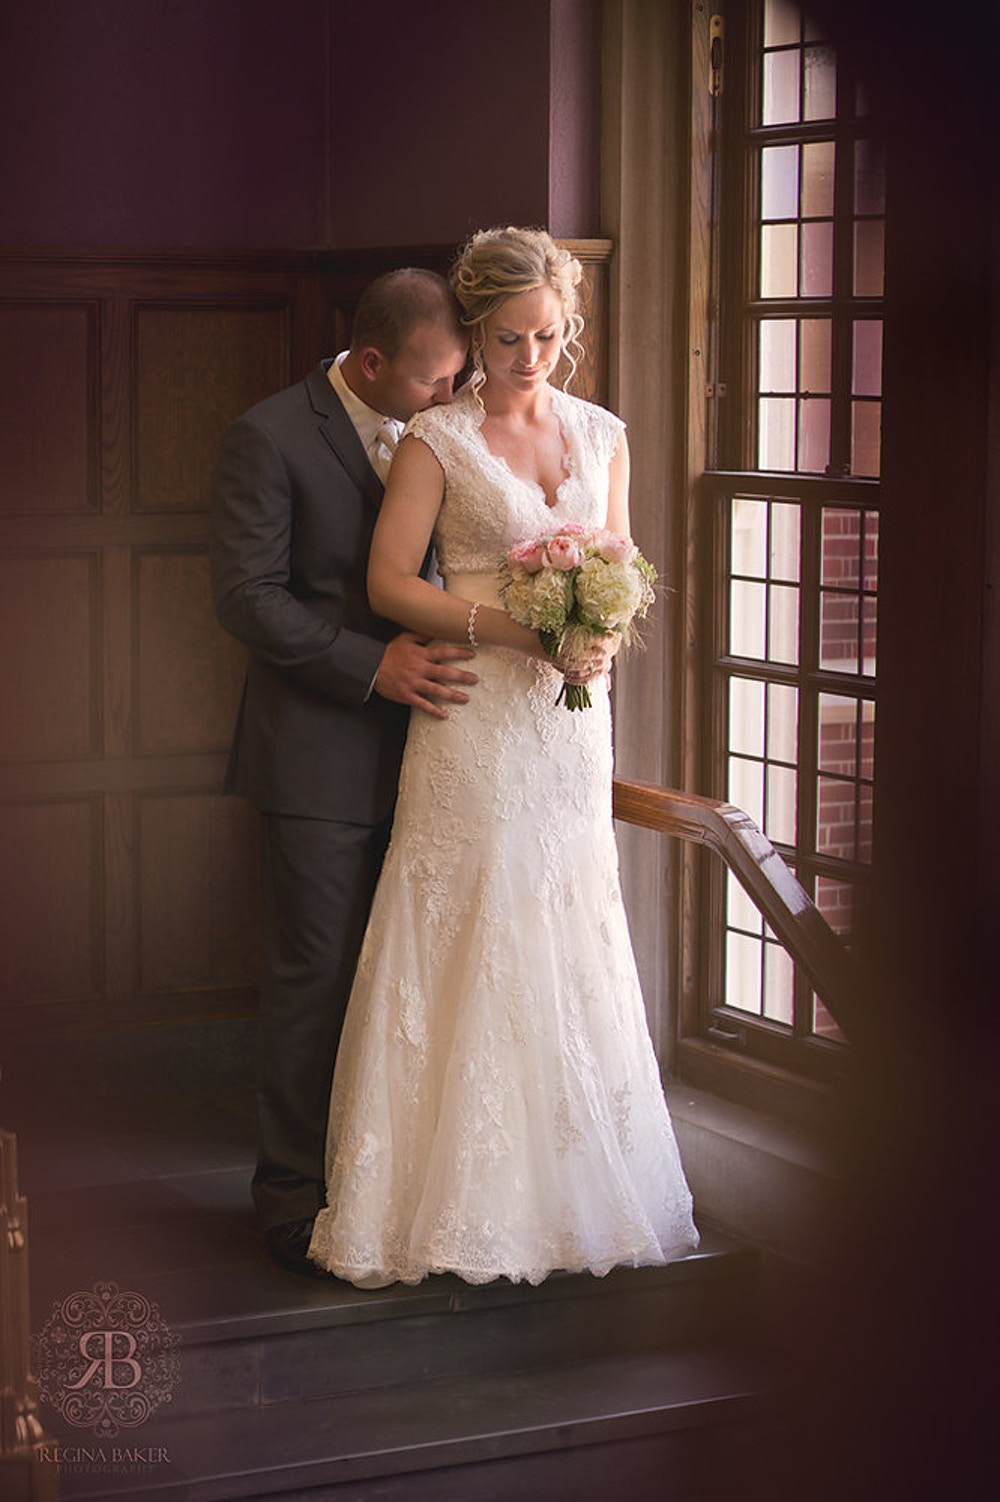 WEDDINGS - Regina Baker Photography, LLC